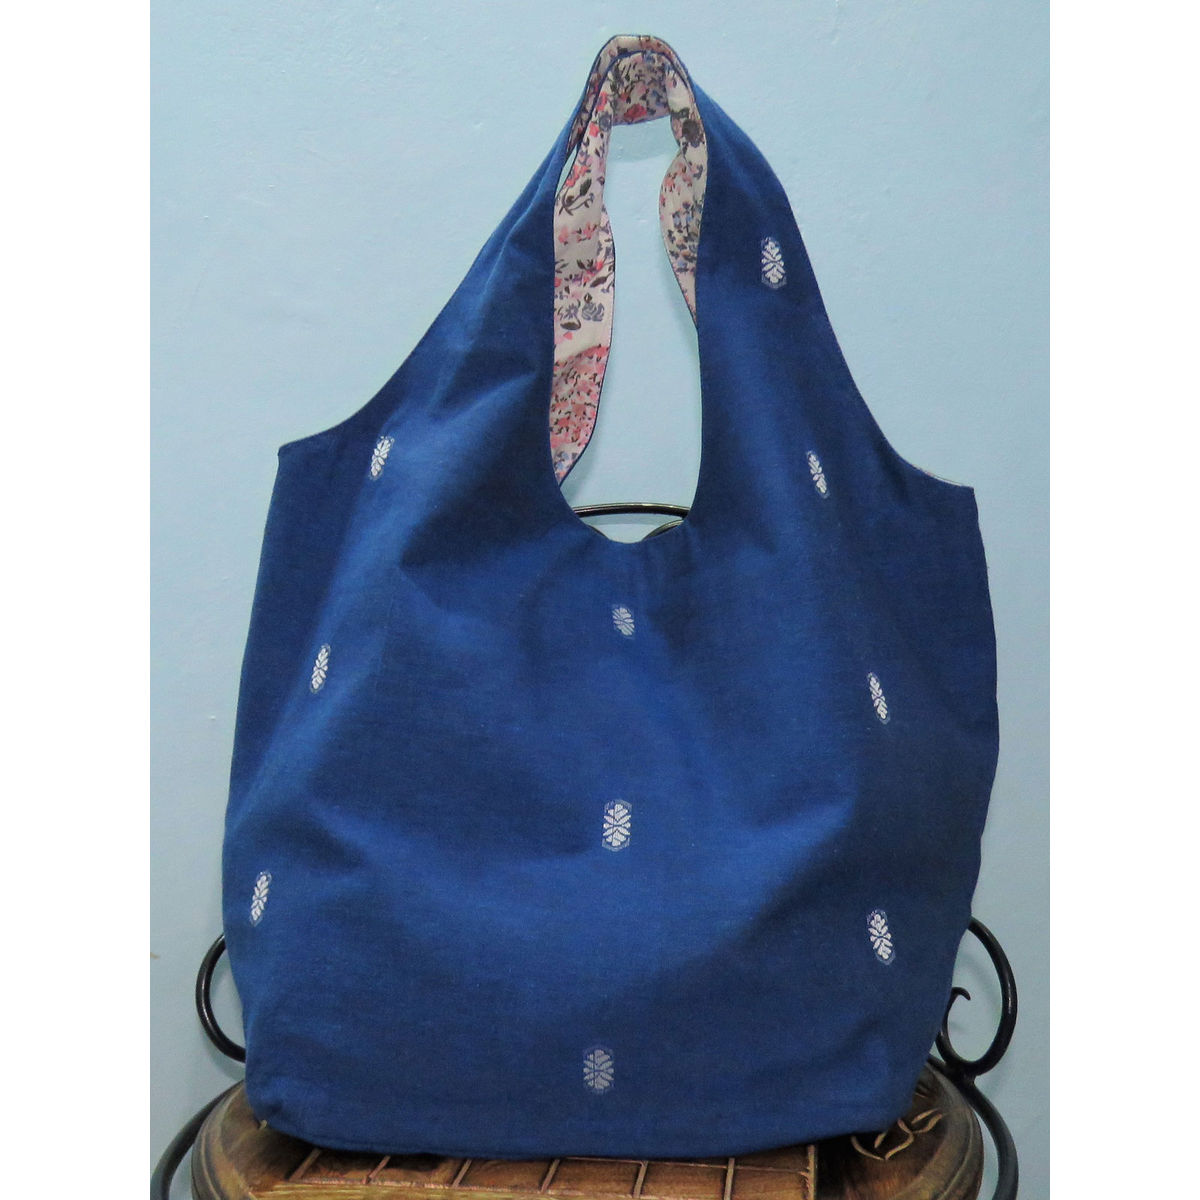 Indigo handwoven Hobo cotton bag